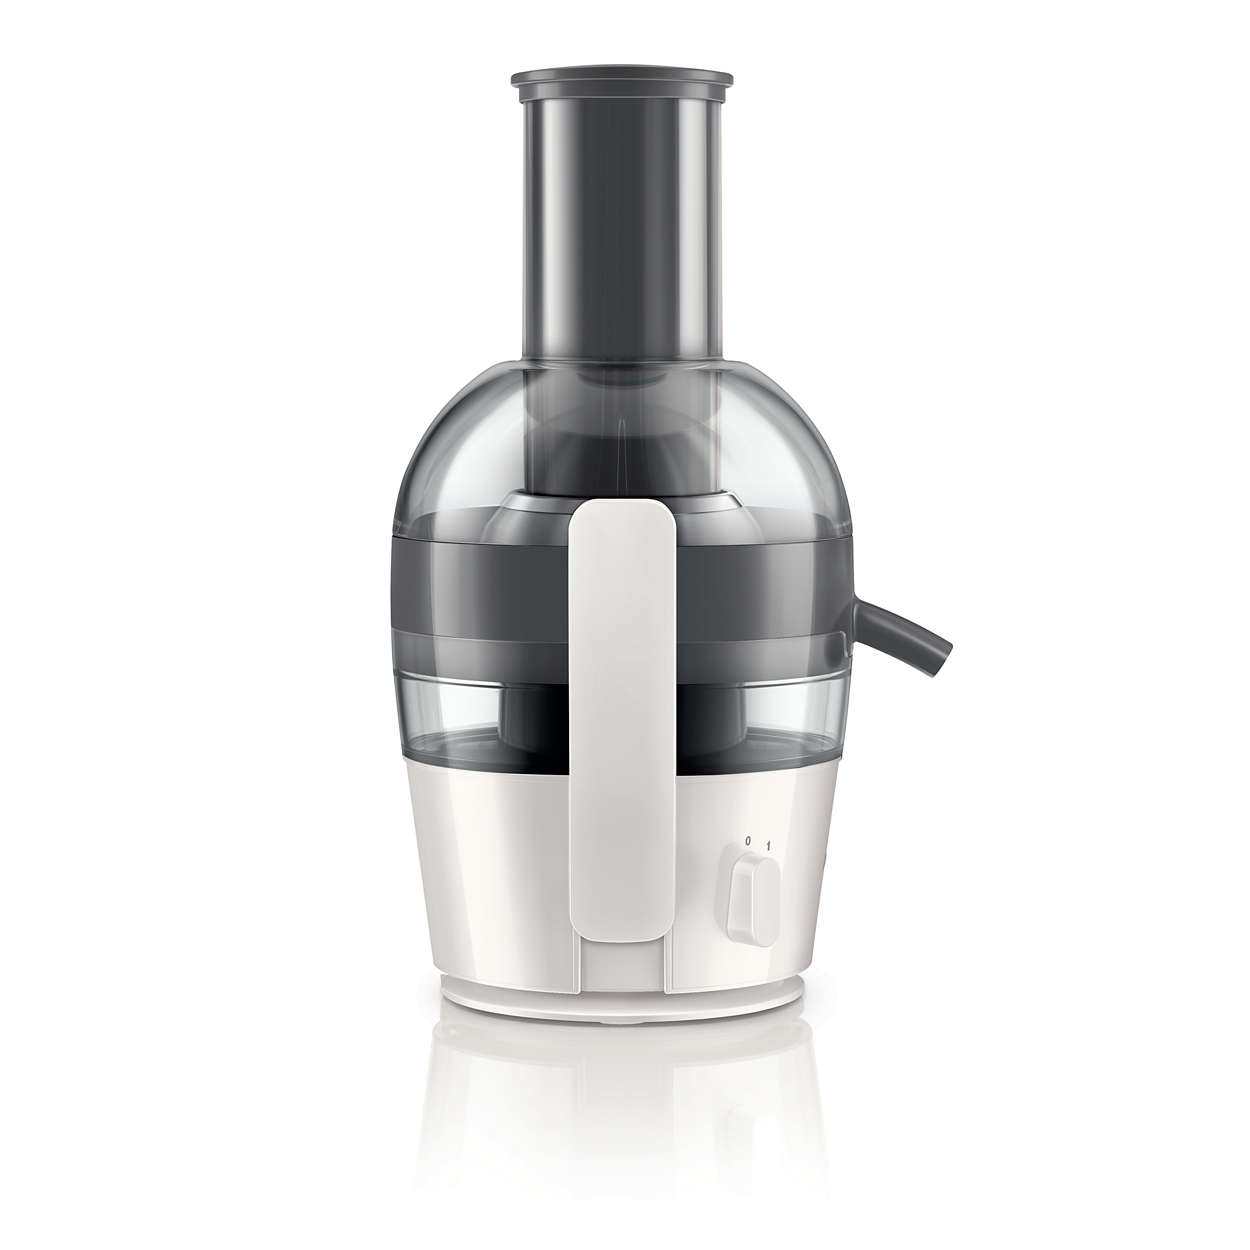 Philips Slow Juicer Pret : viva Collection Juicer HR1855/31 Philips